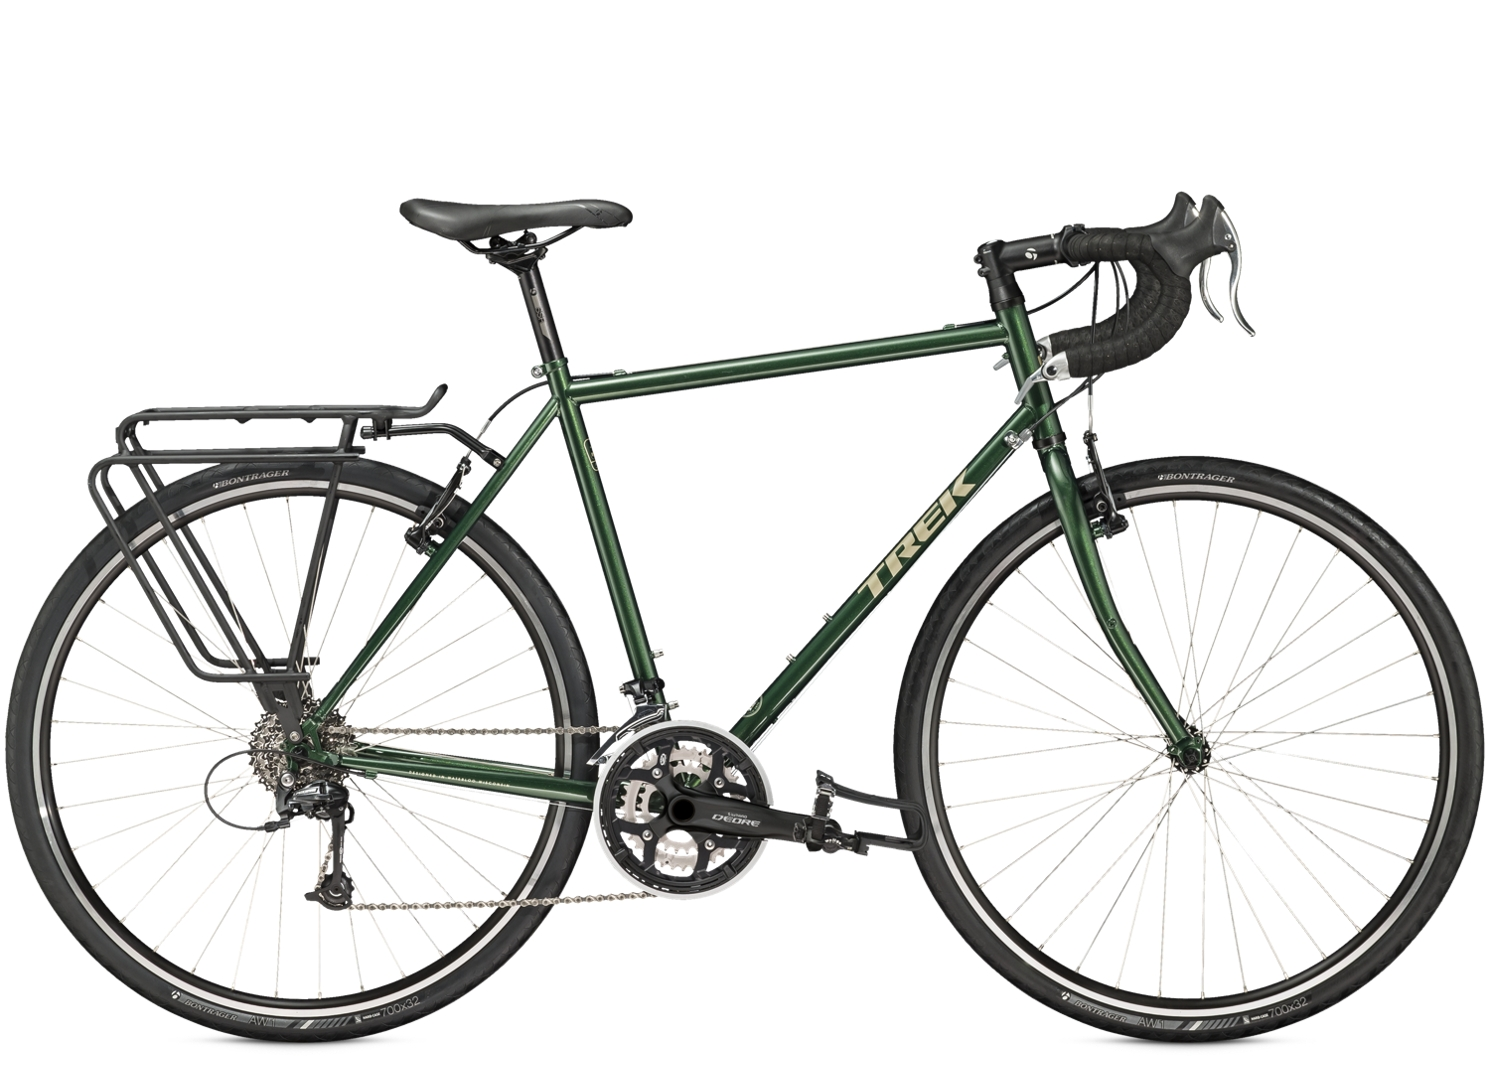 520 Trek Bicycle